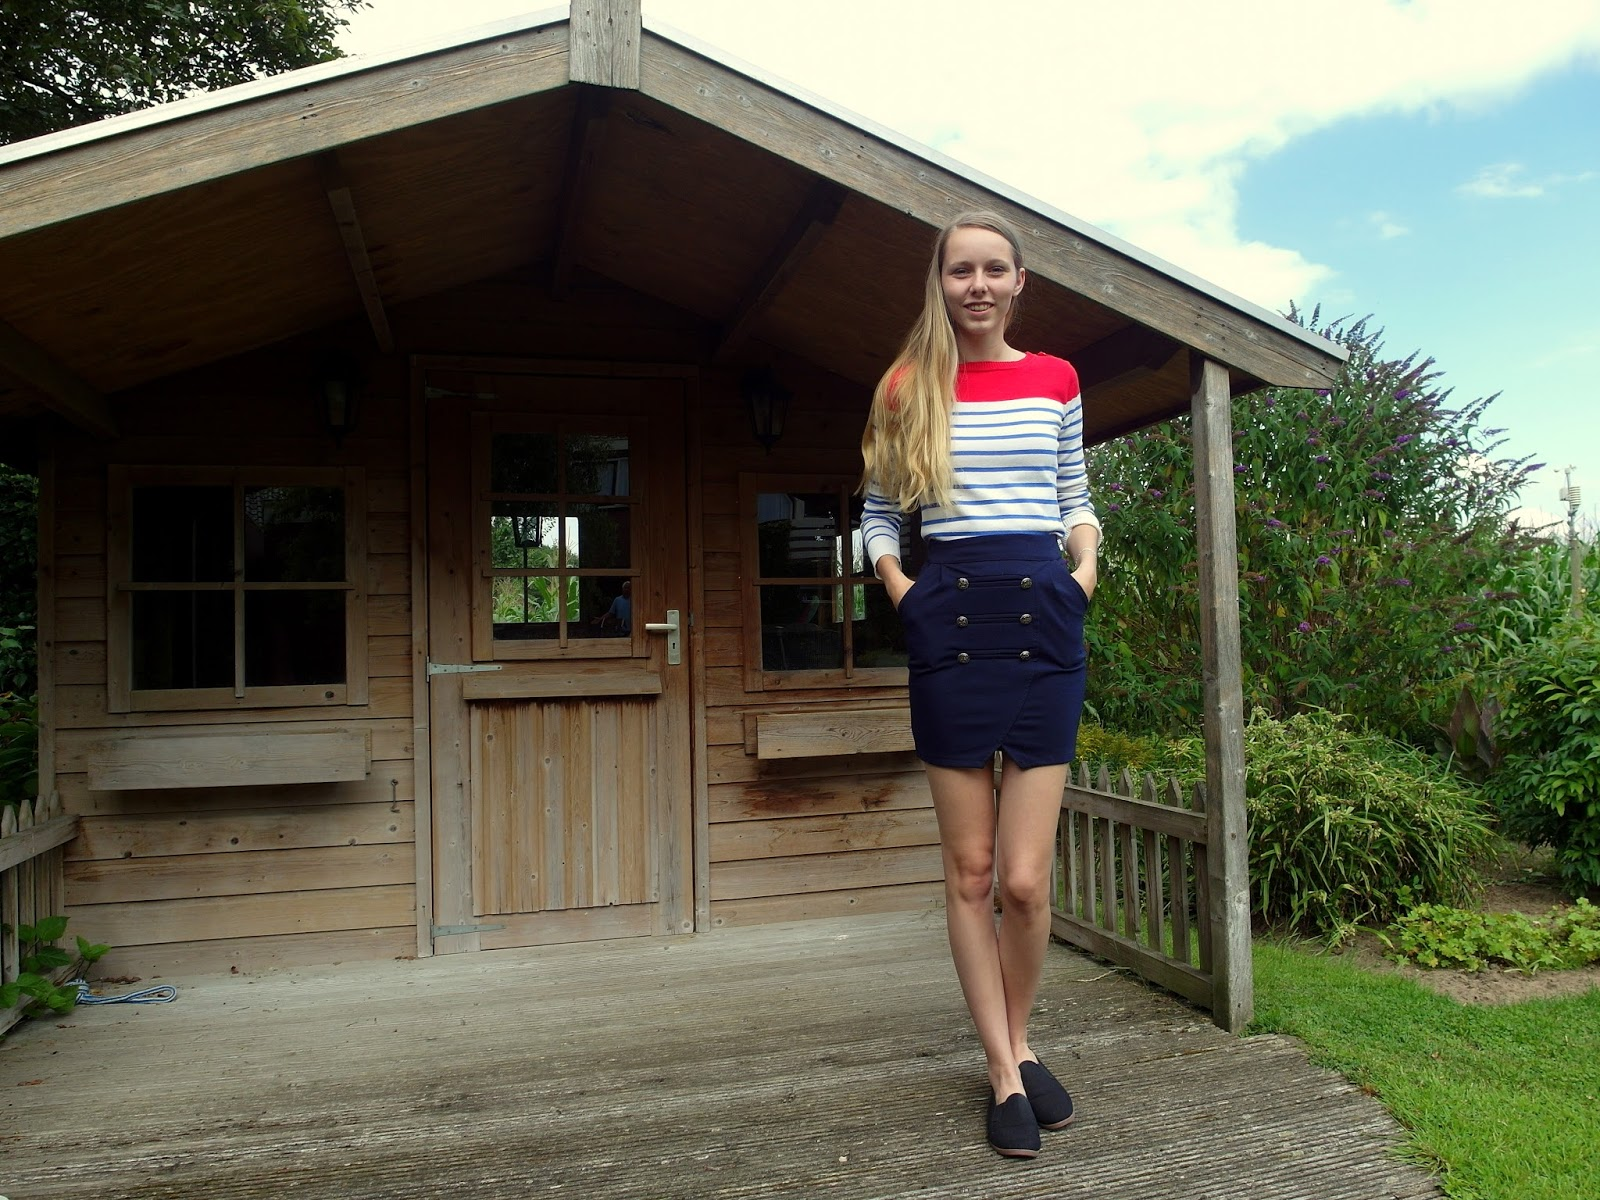 Outfit | The navy skirt